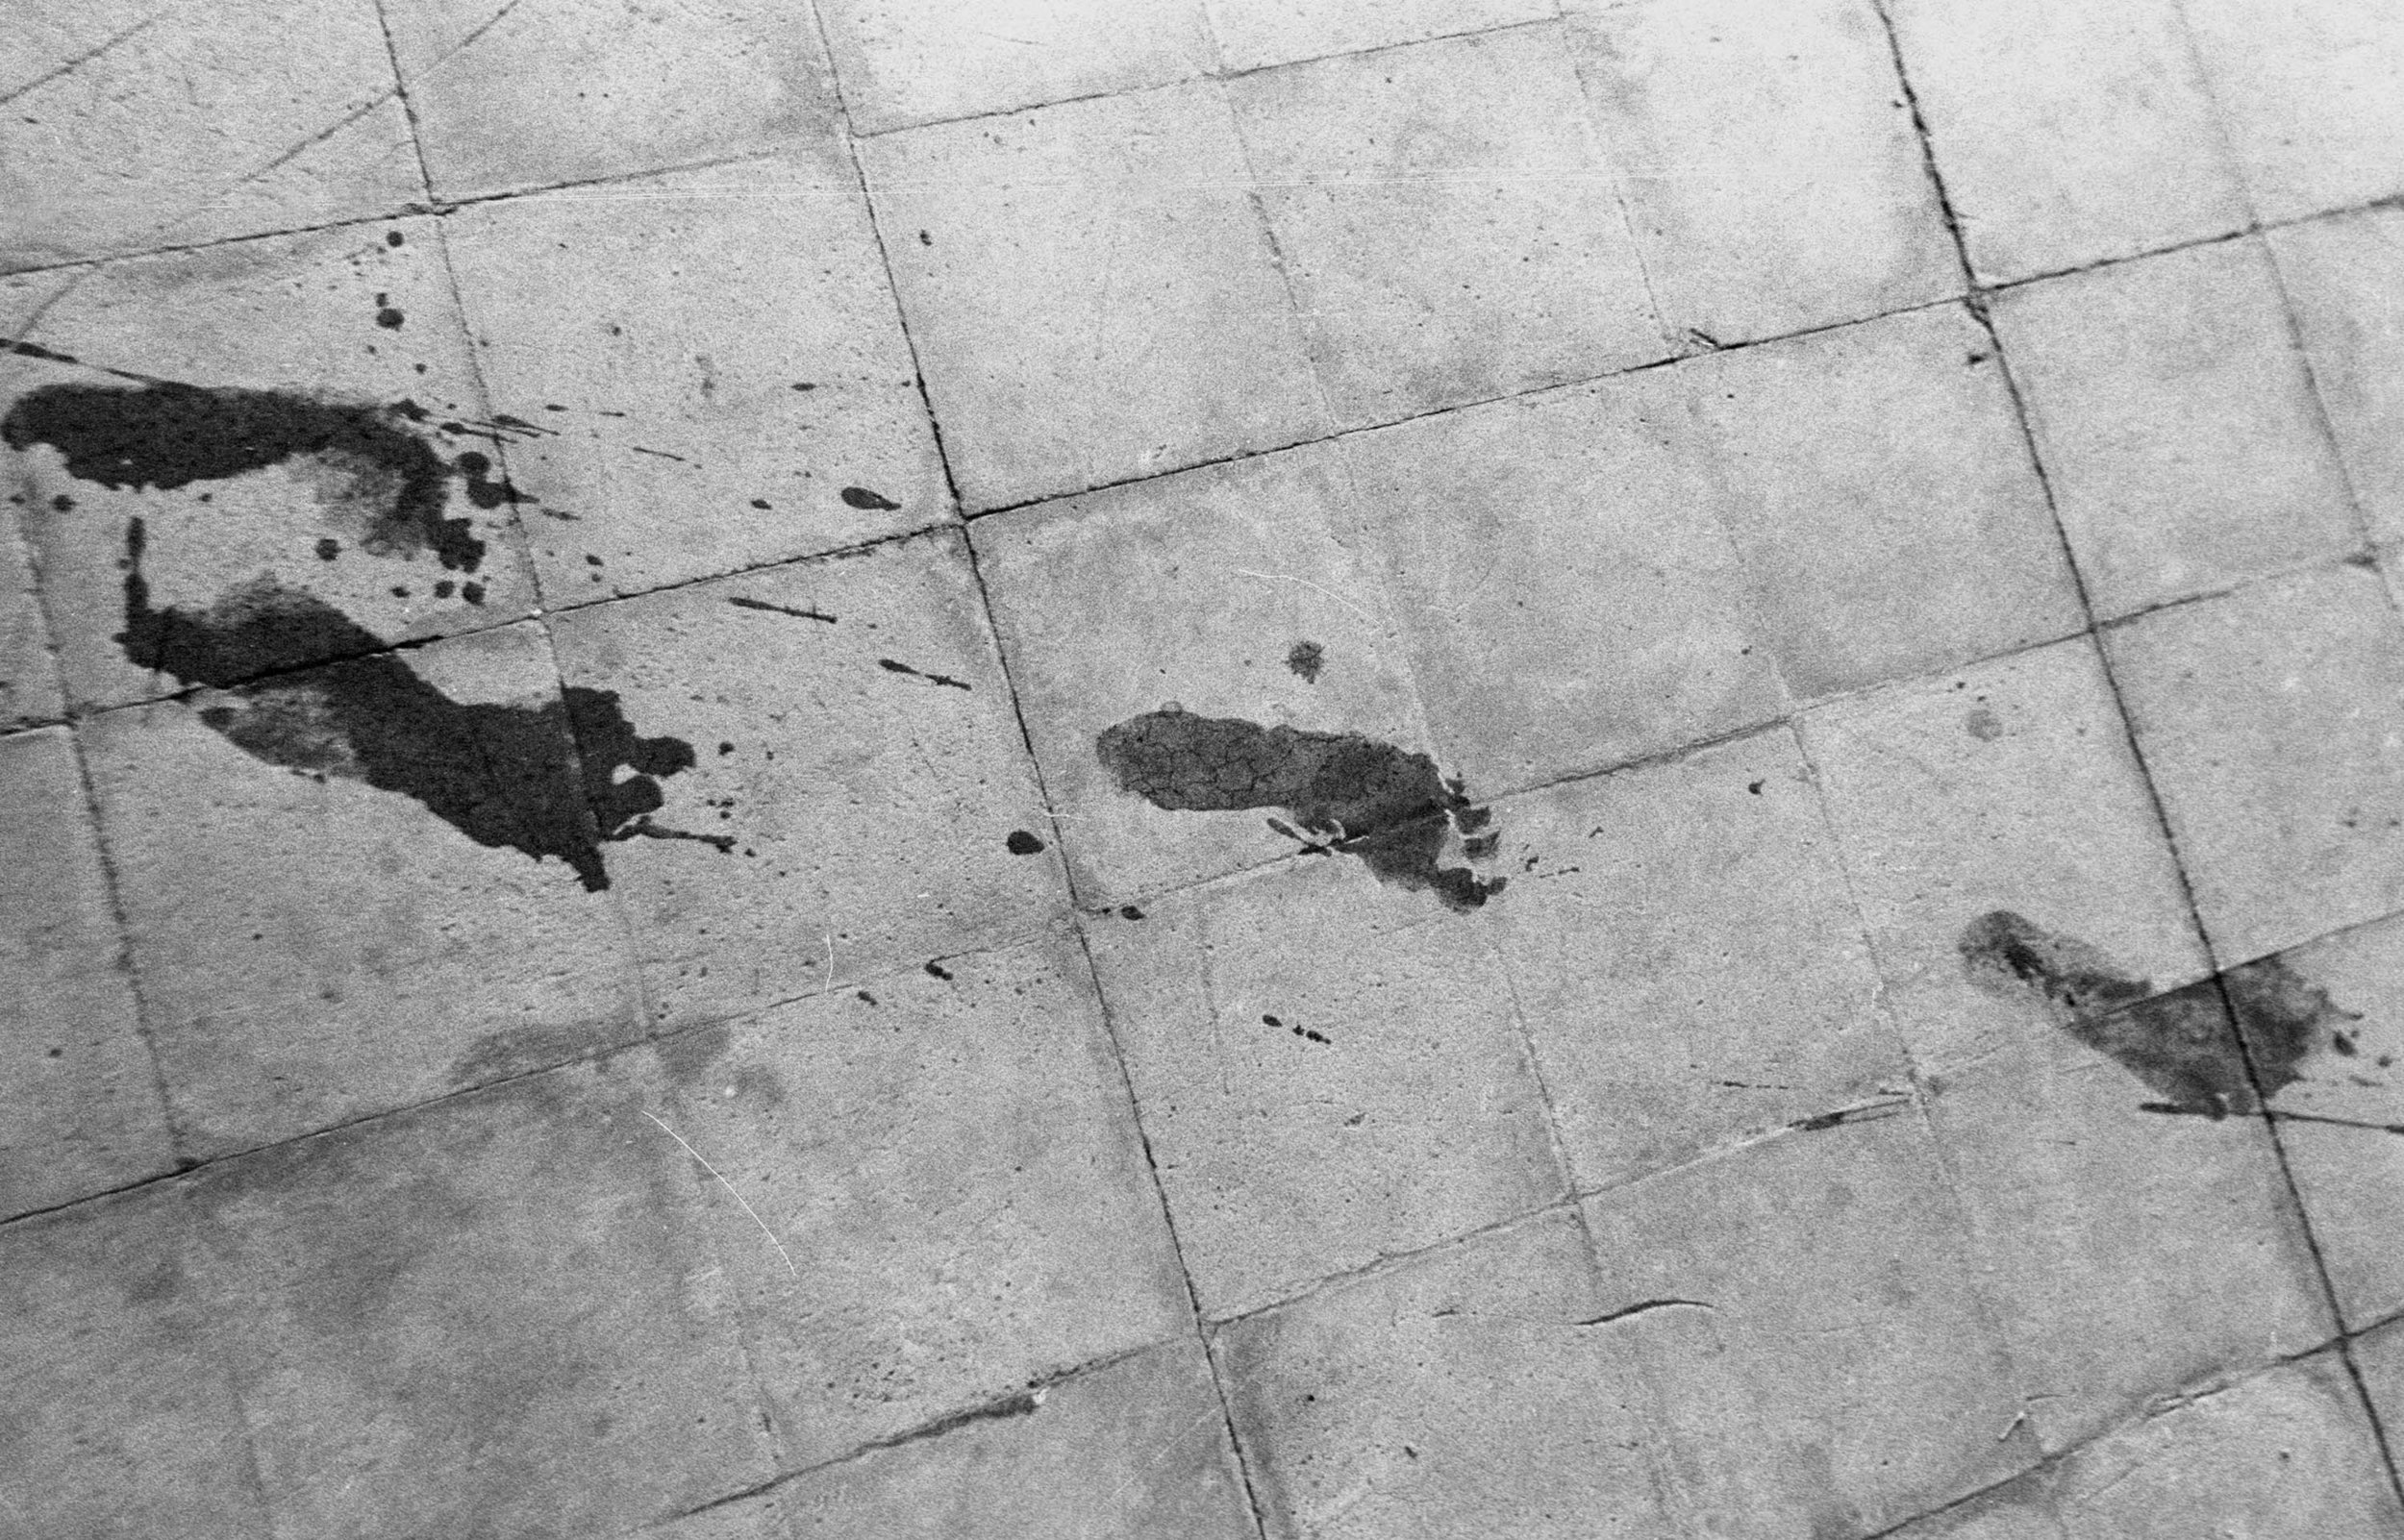 A trail of urine footprints left by a leaking fistula patient at the Addis Ababa fistula hospital in Ethiopia.